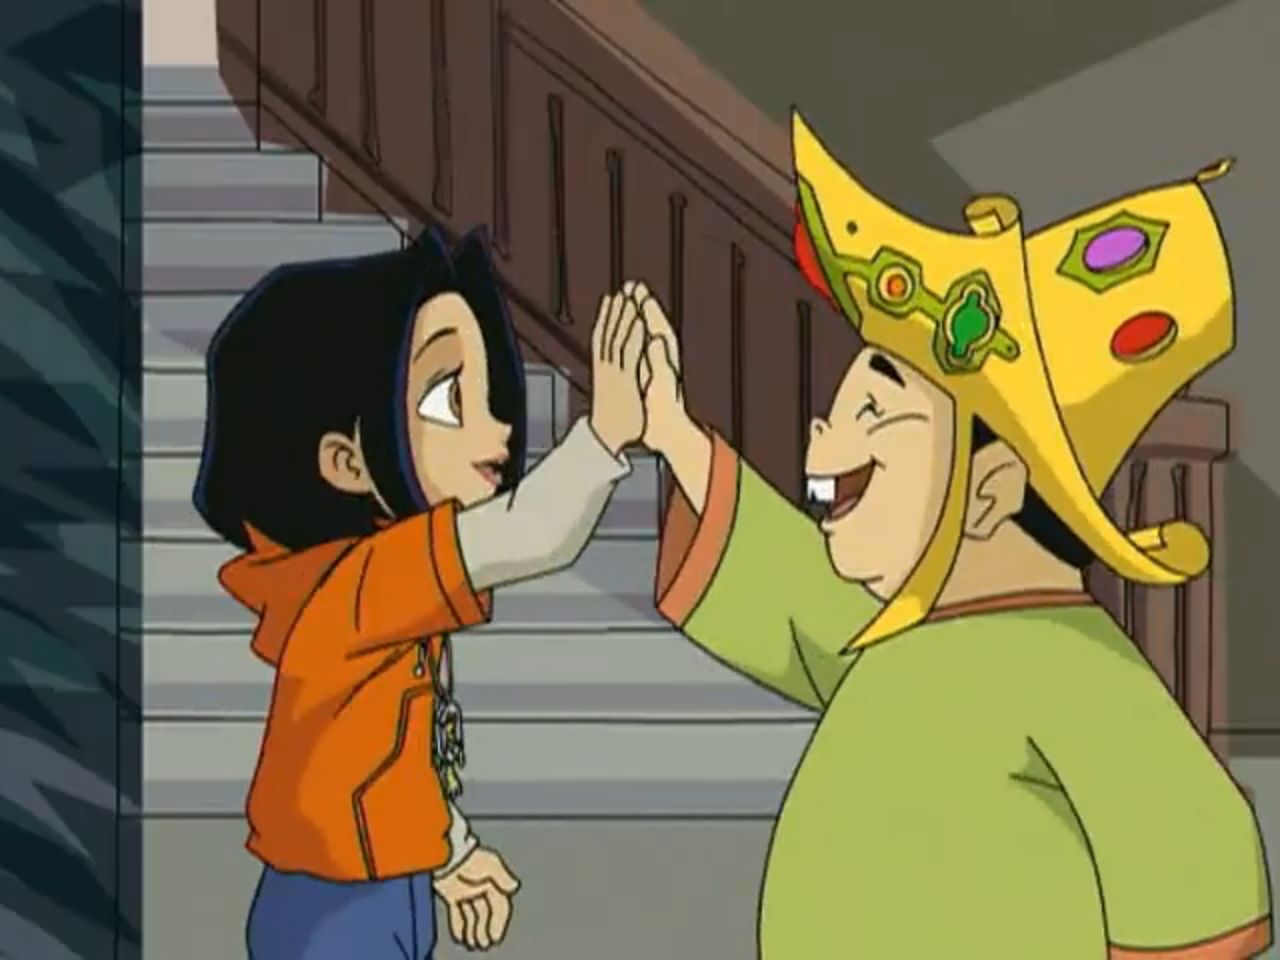 The King and Jade